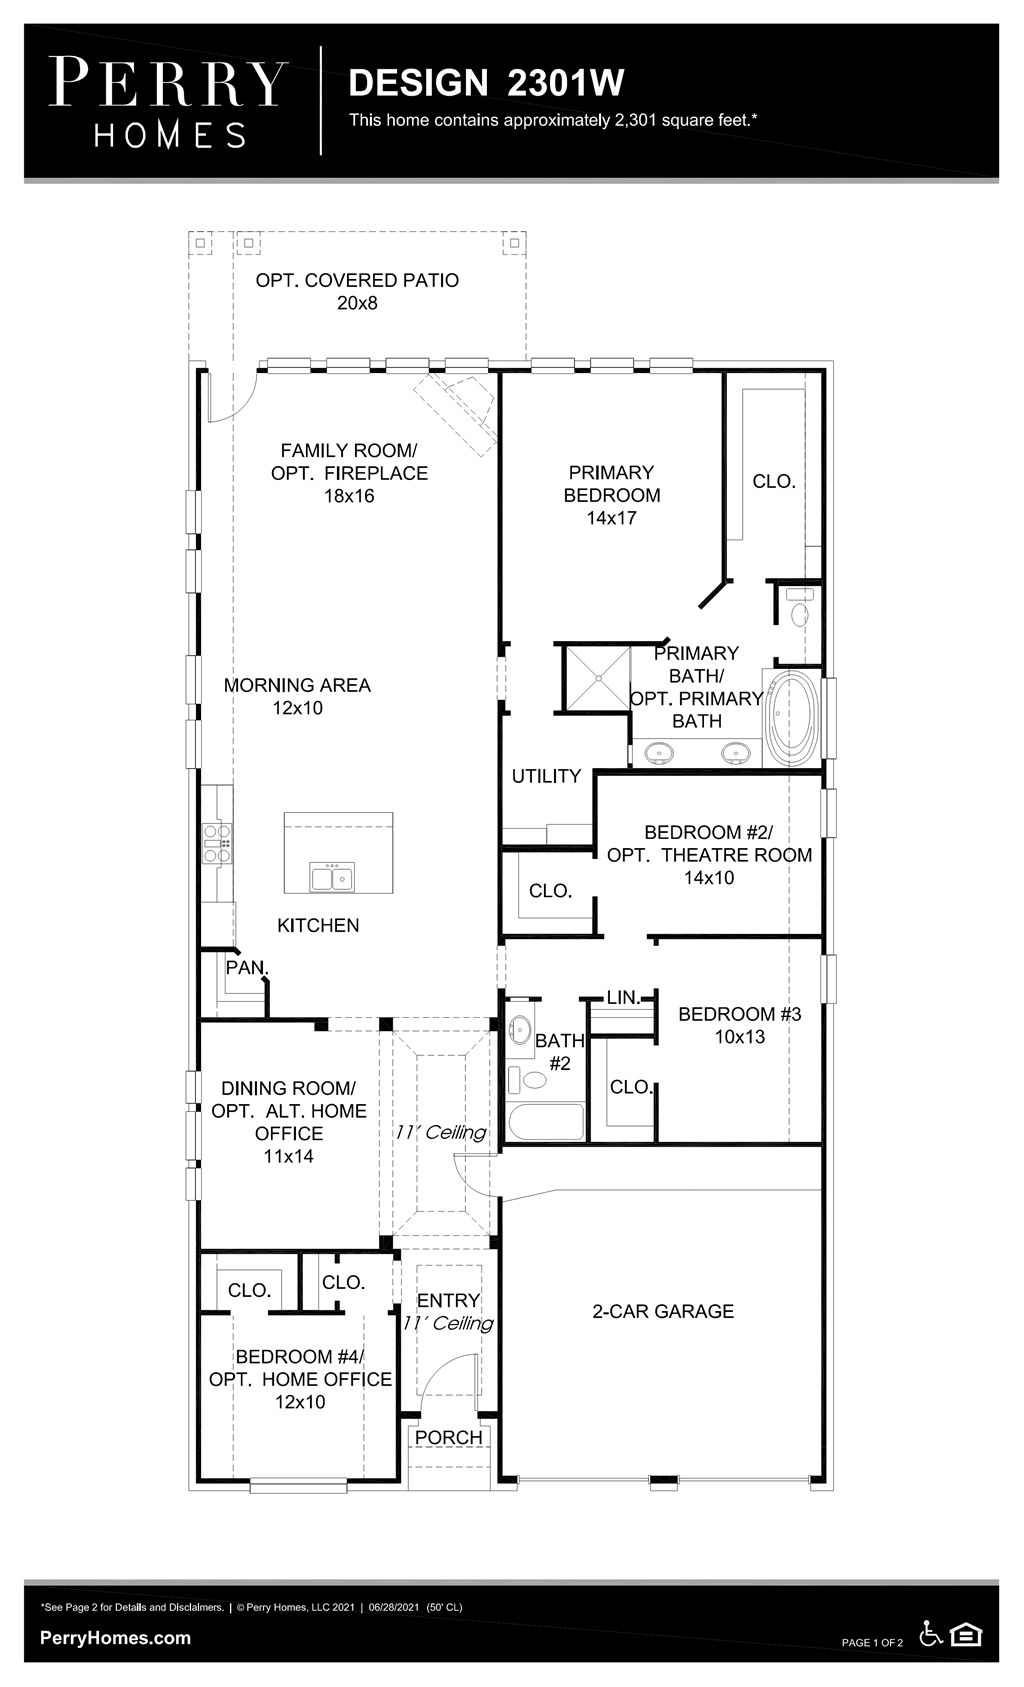 Floor Plan for 2301W